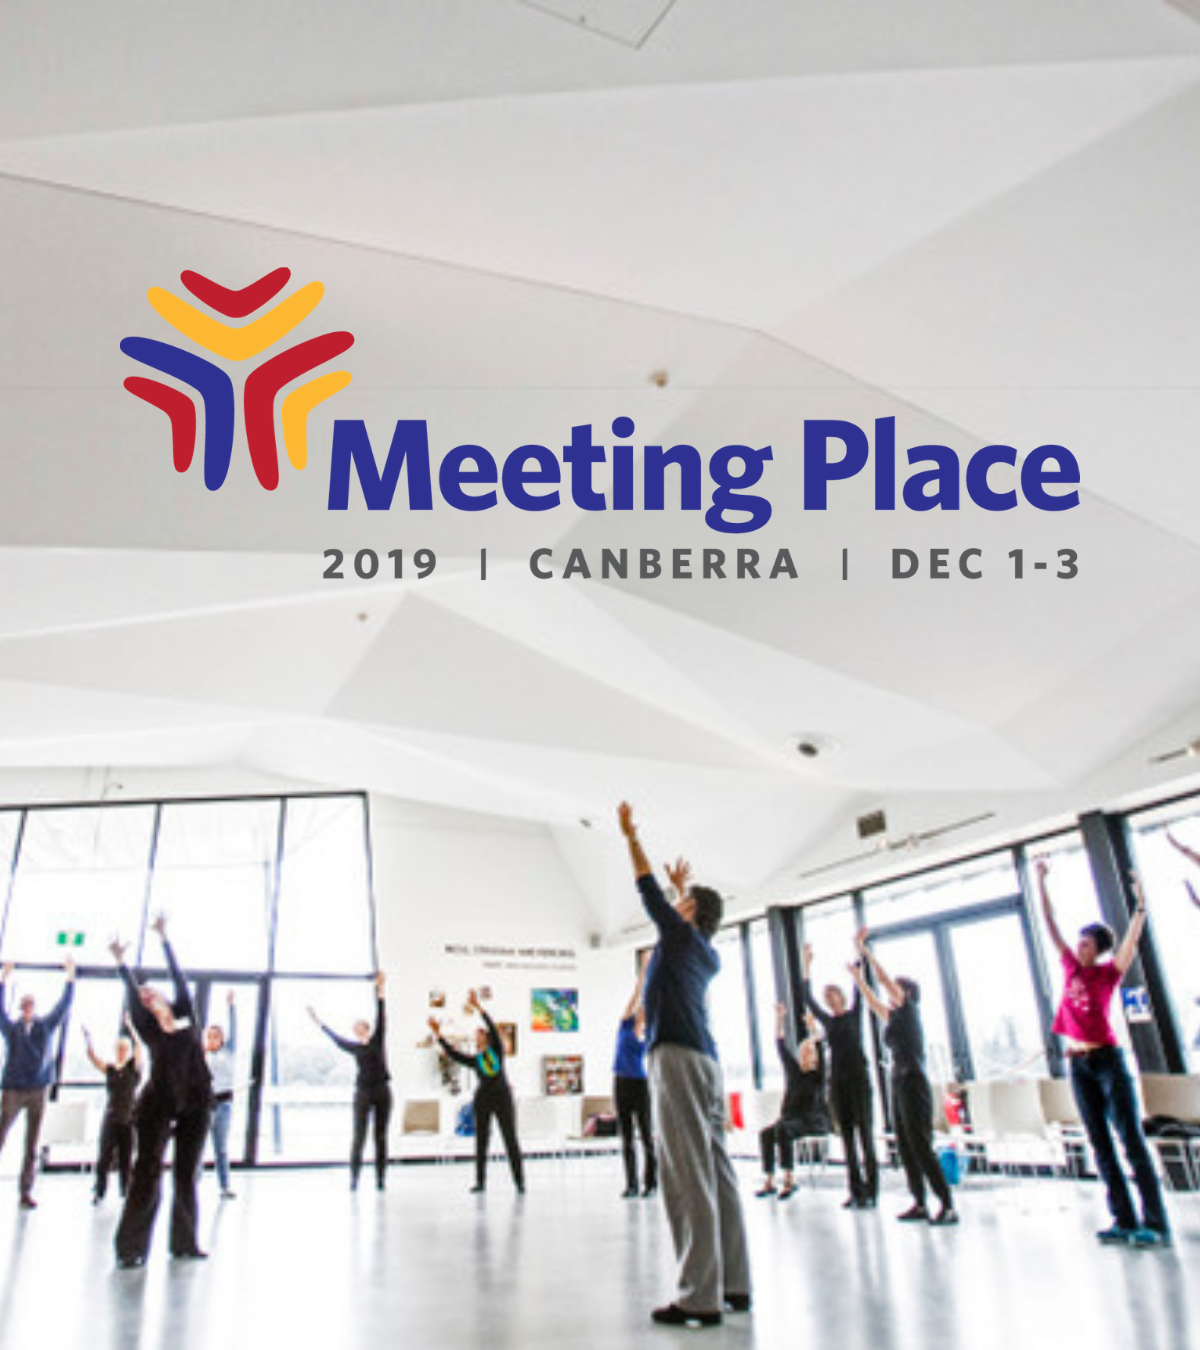 A large group of people with their arms stretched to the sky. Overlaid on the image is the Meeting Place logo.